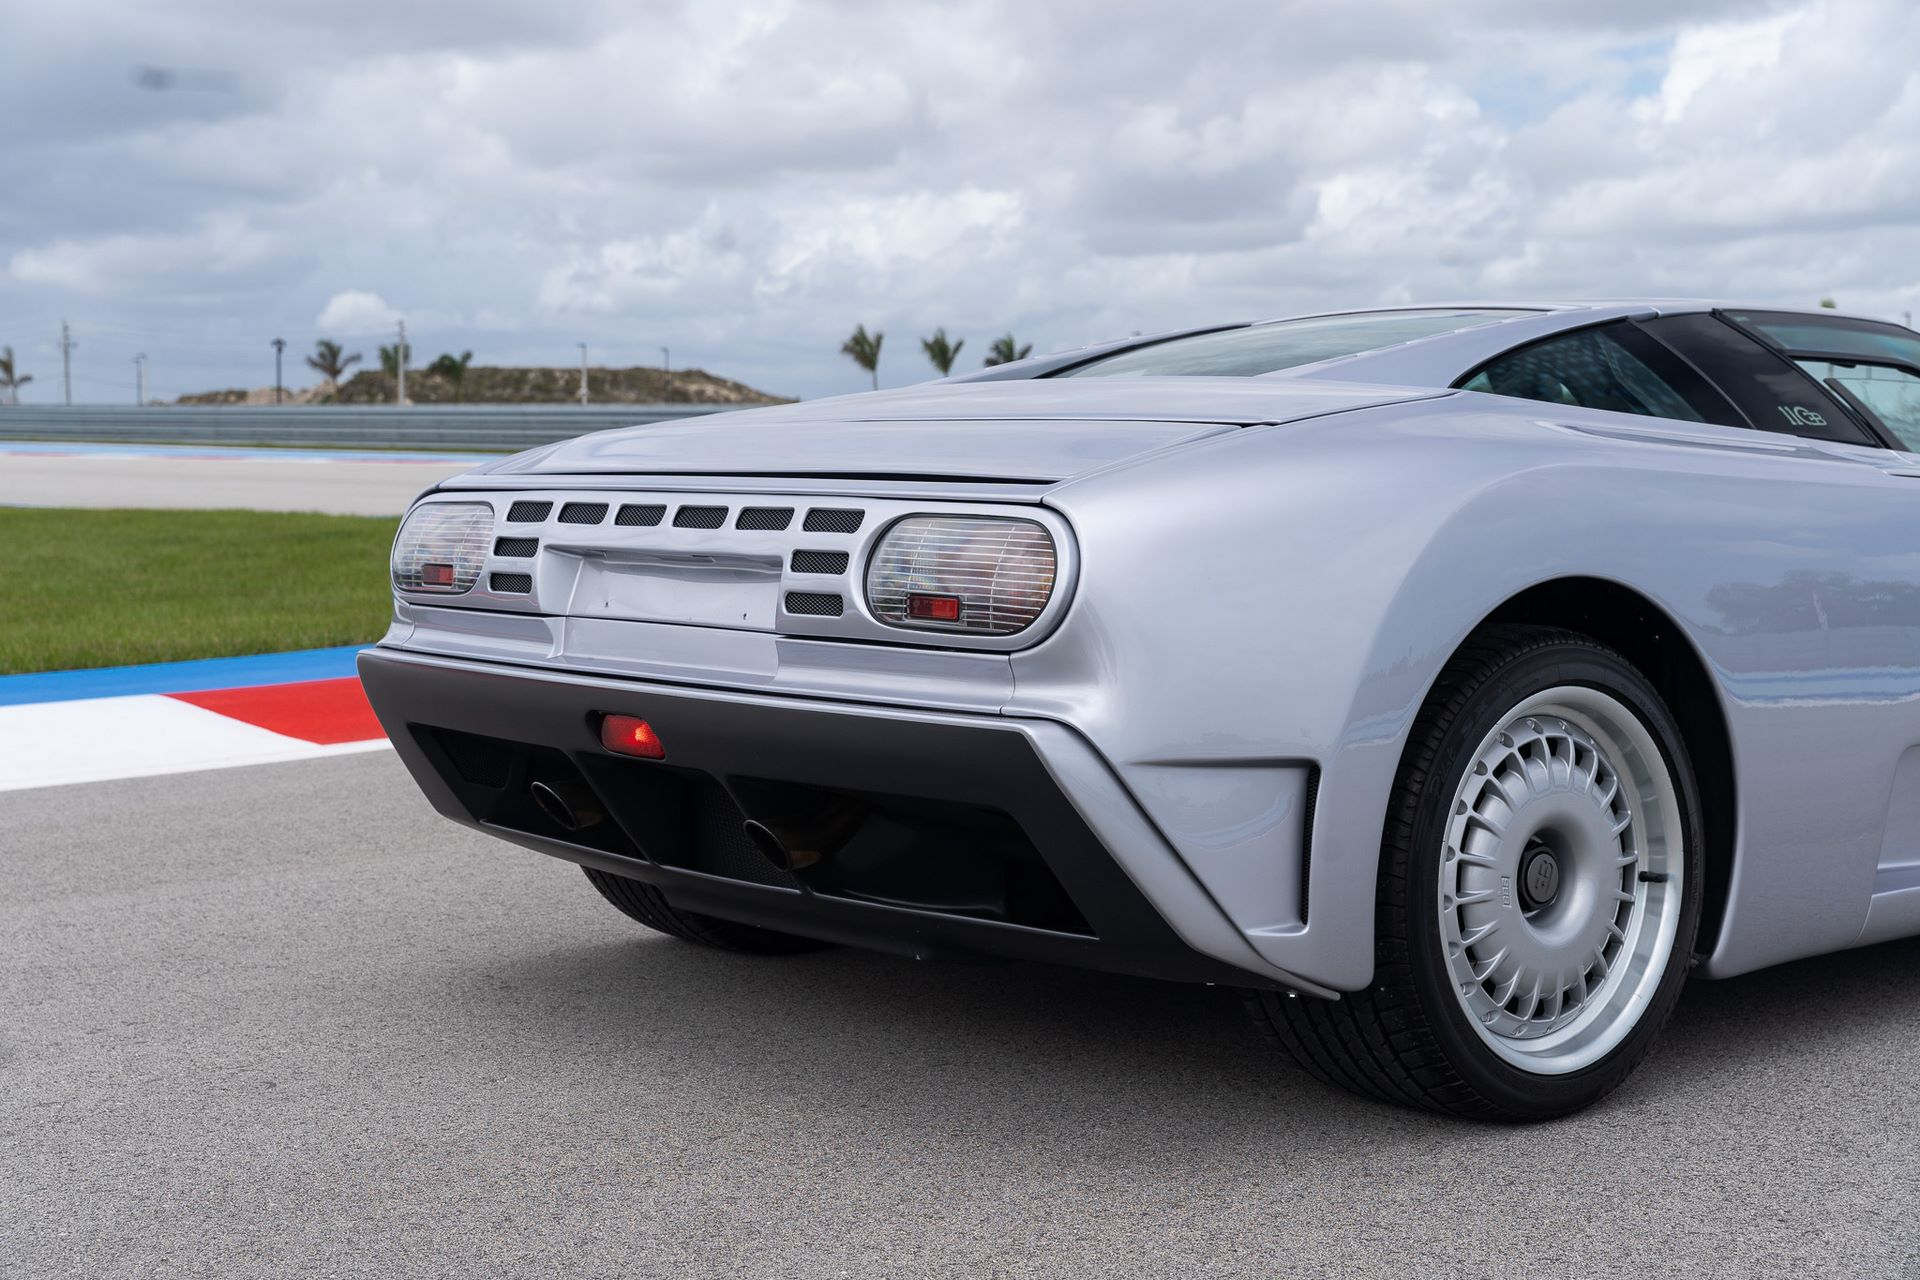 Bugatti-EB110-GT-demo-car-for-sale-4